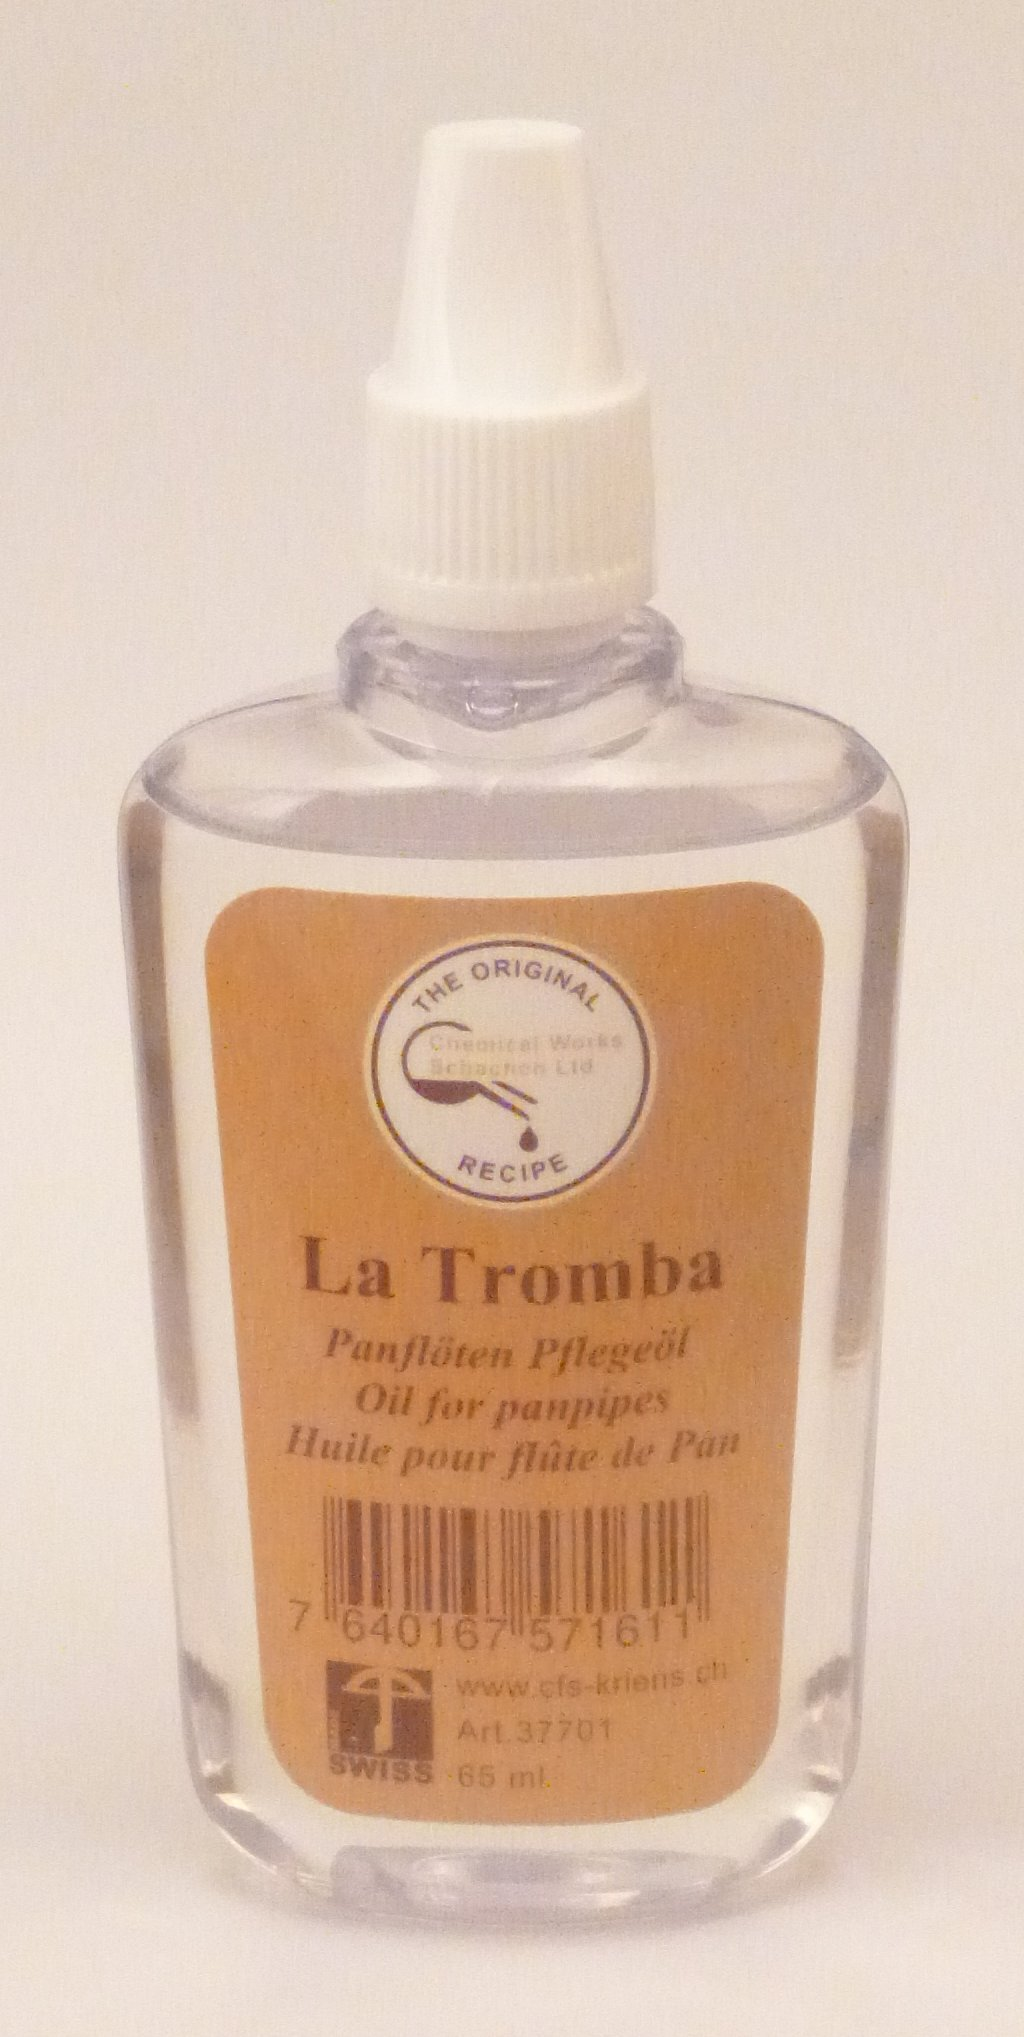 La Tromba Oil for Panpipes